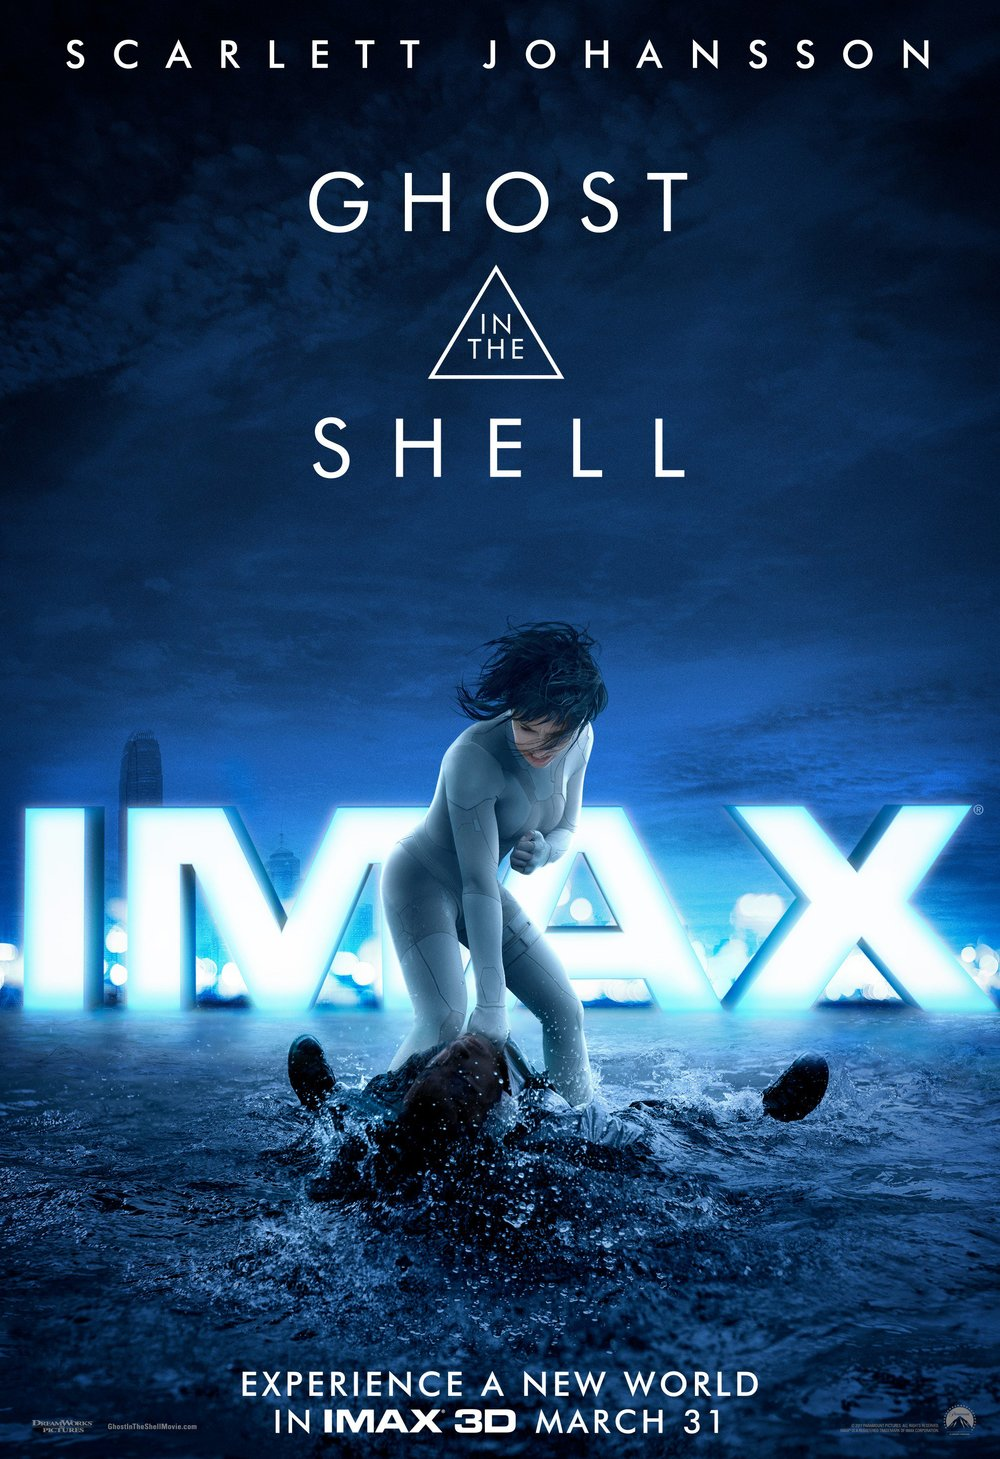 the-major-lays-a-brutal-beatdown-on-ghost-in-the-shell-imax-poster-plus-new-photo-and-8-character-posters1